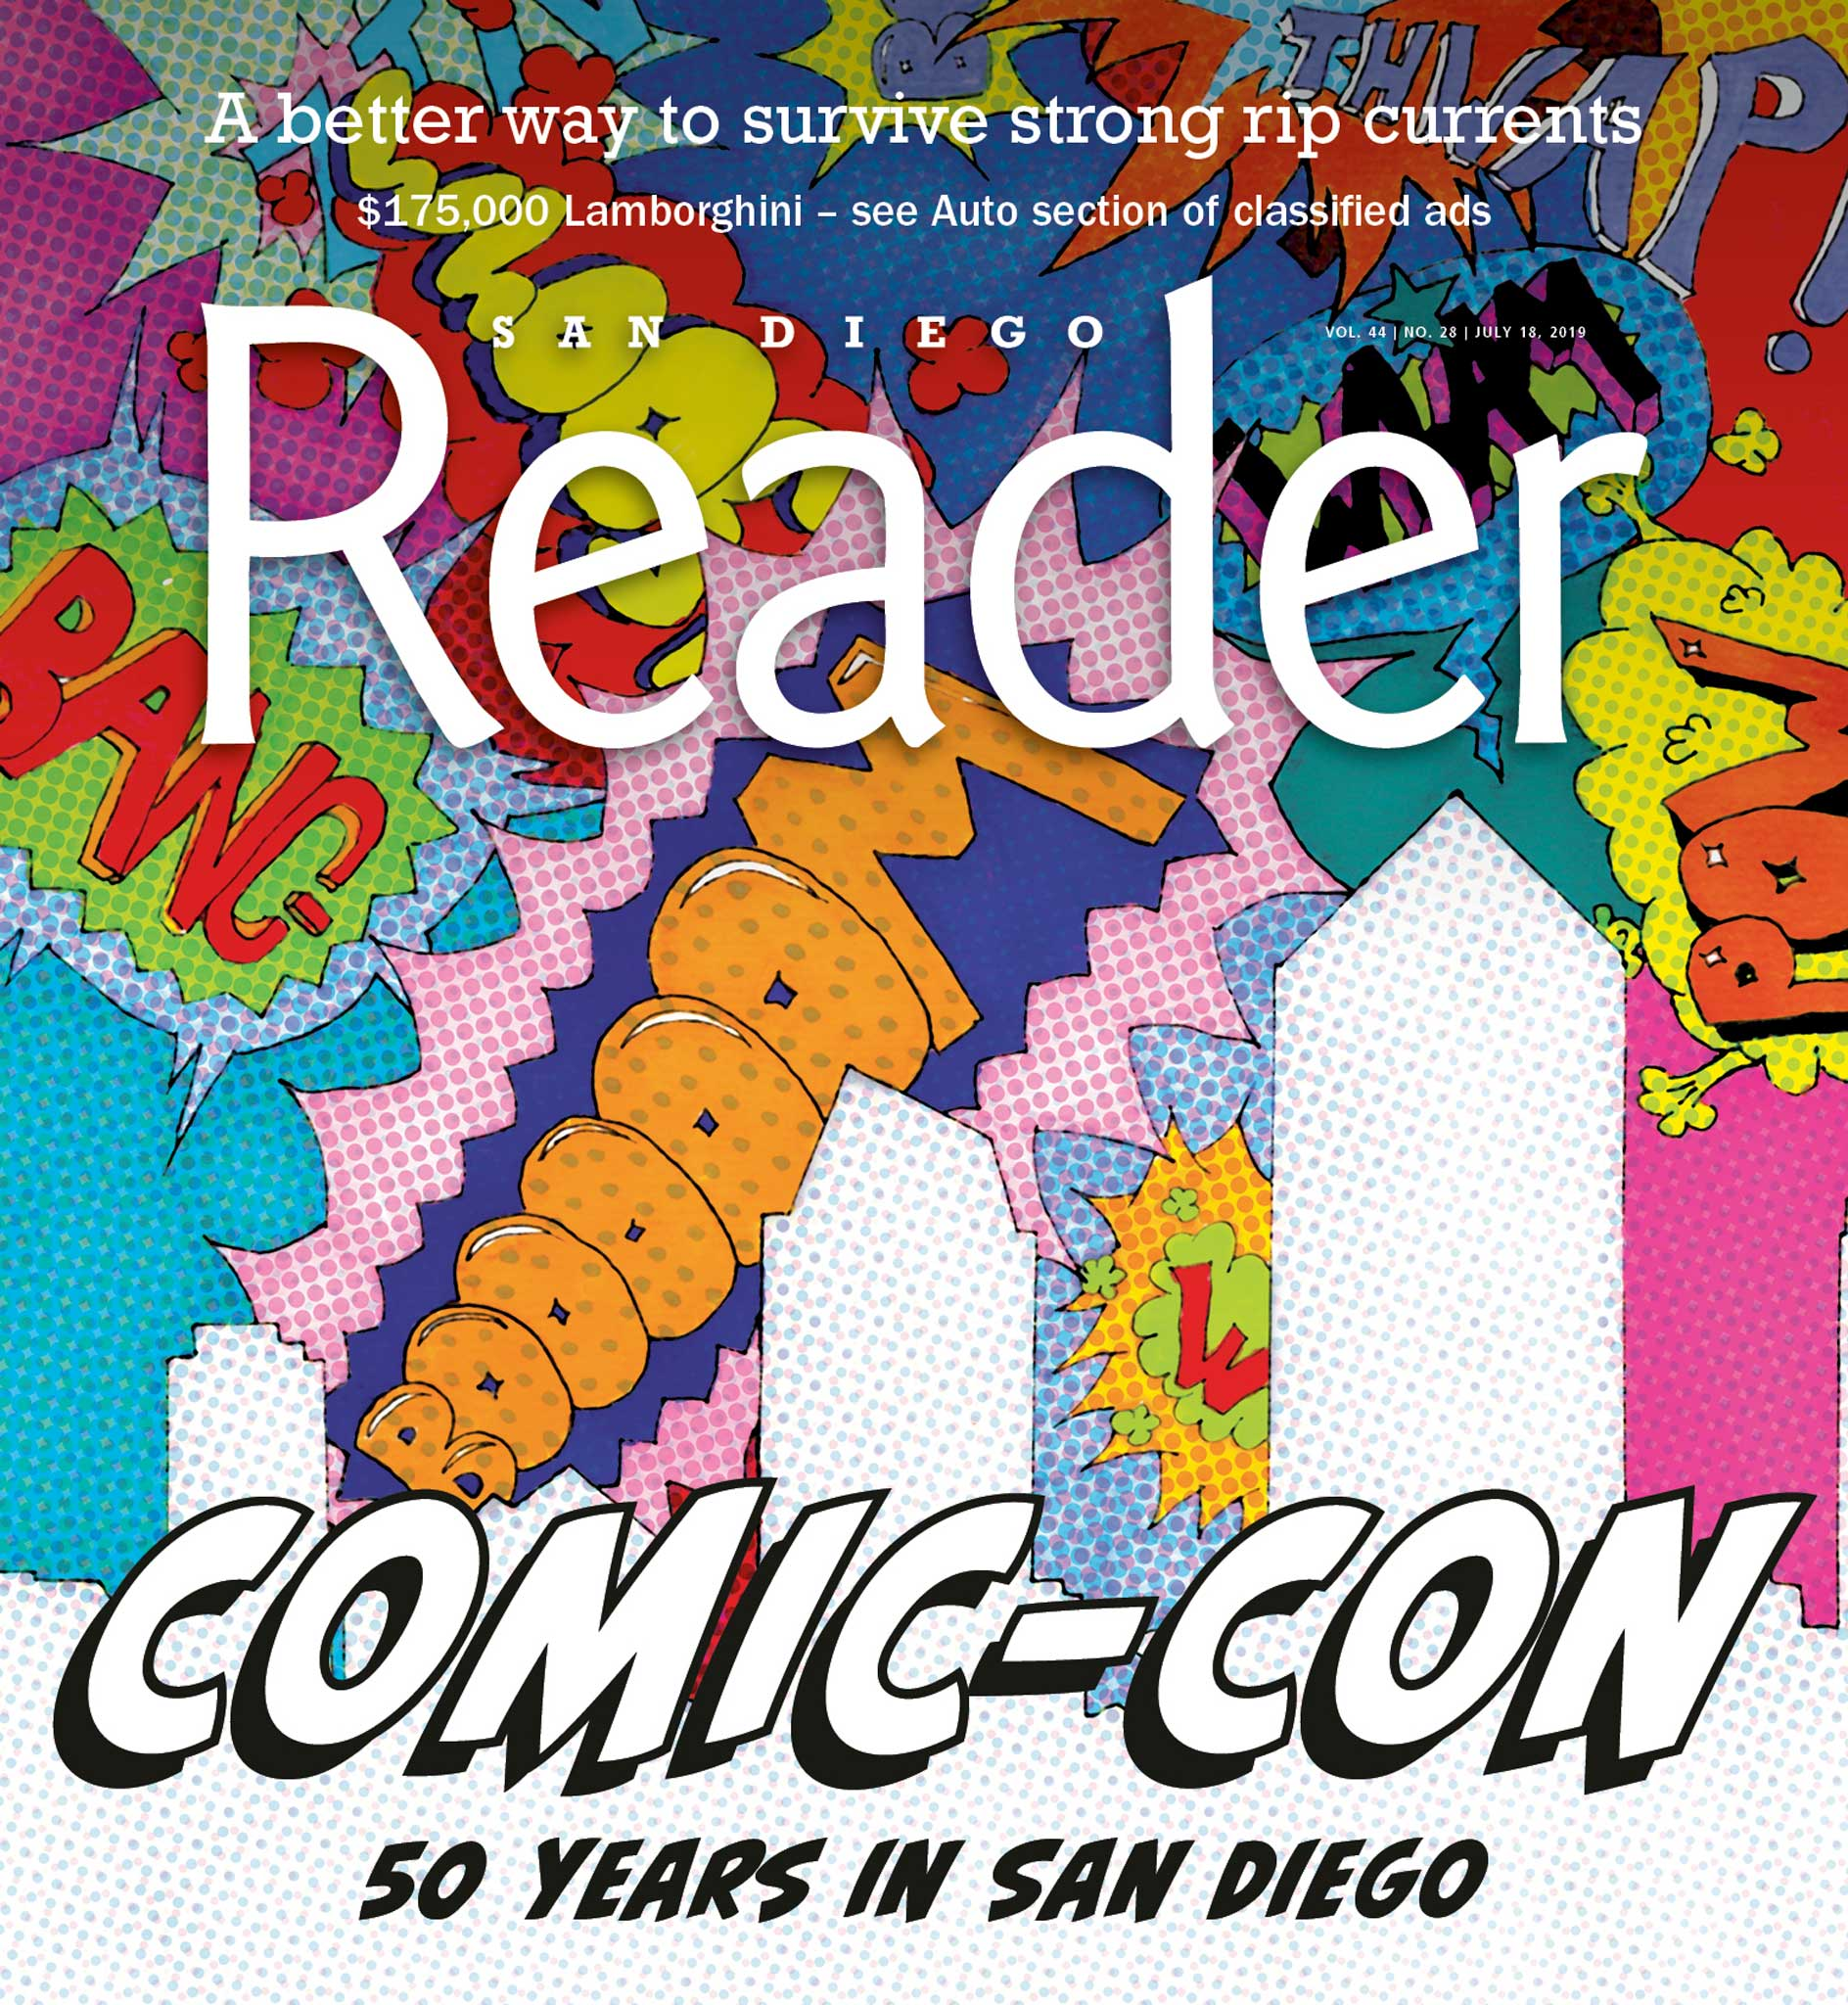 7 Muses Comics comic-con – 50 years in san diego | san diego reader